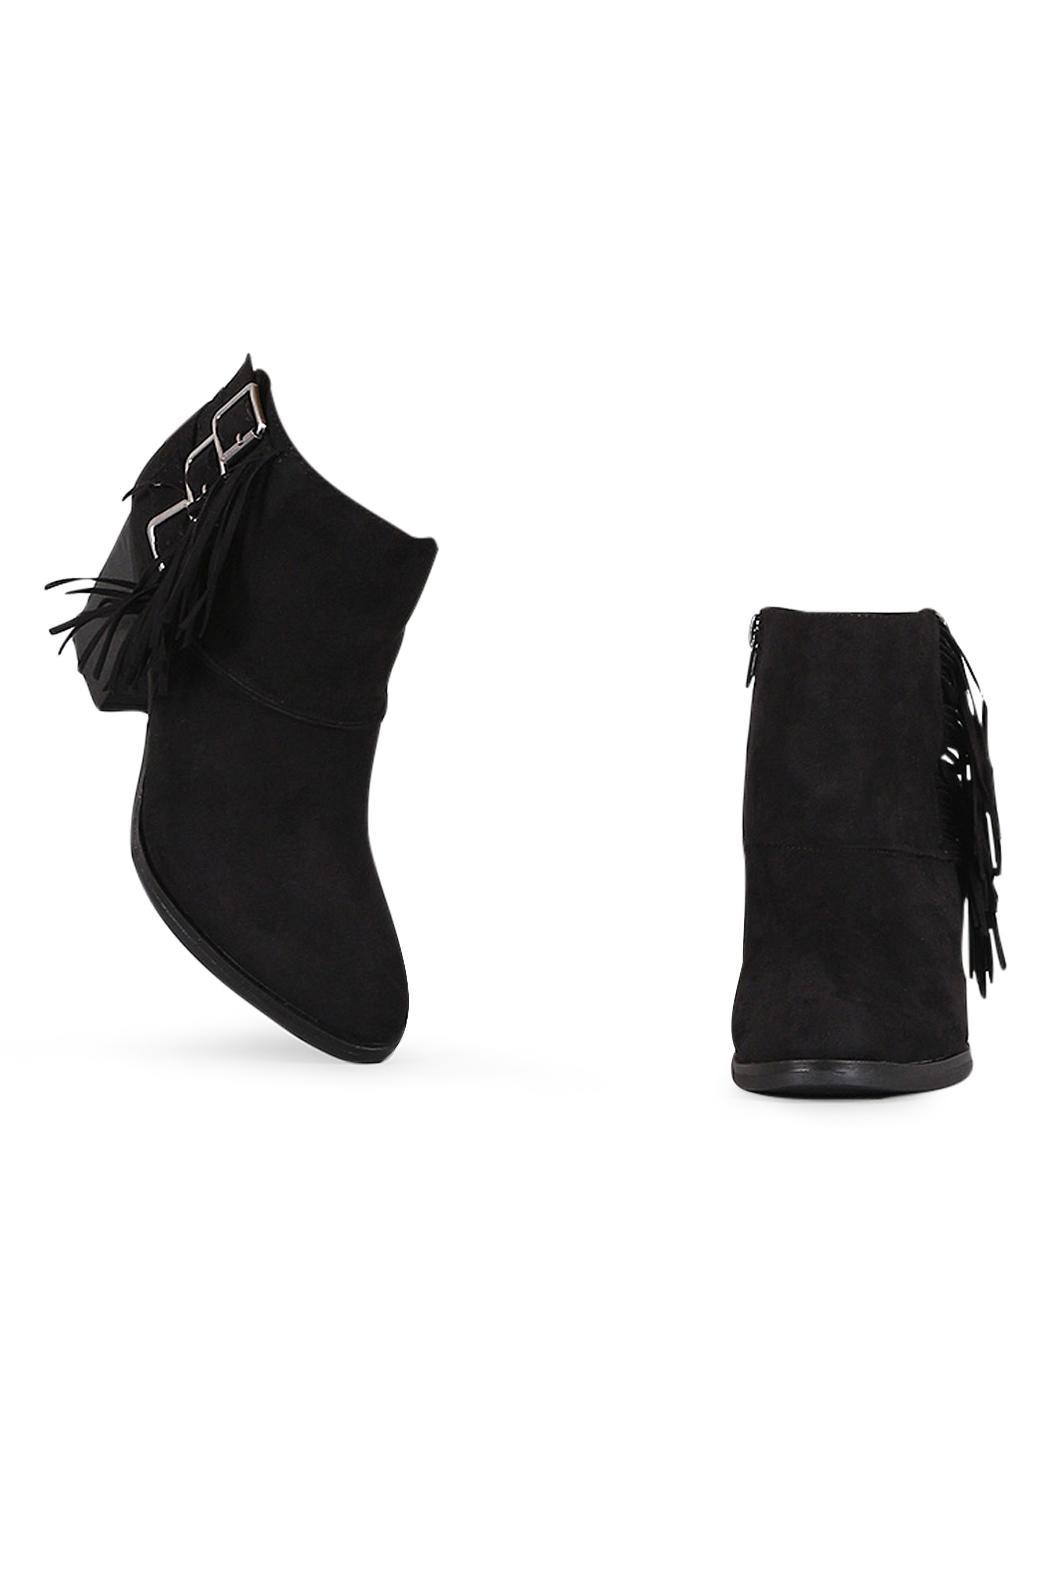 Bamboo Black Buckled-Fringe Booties - Front Full Image